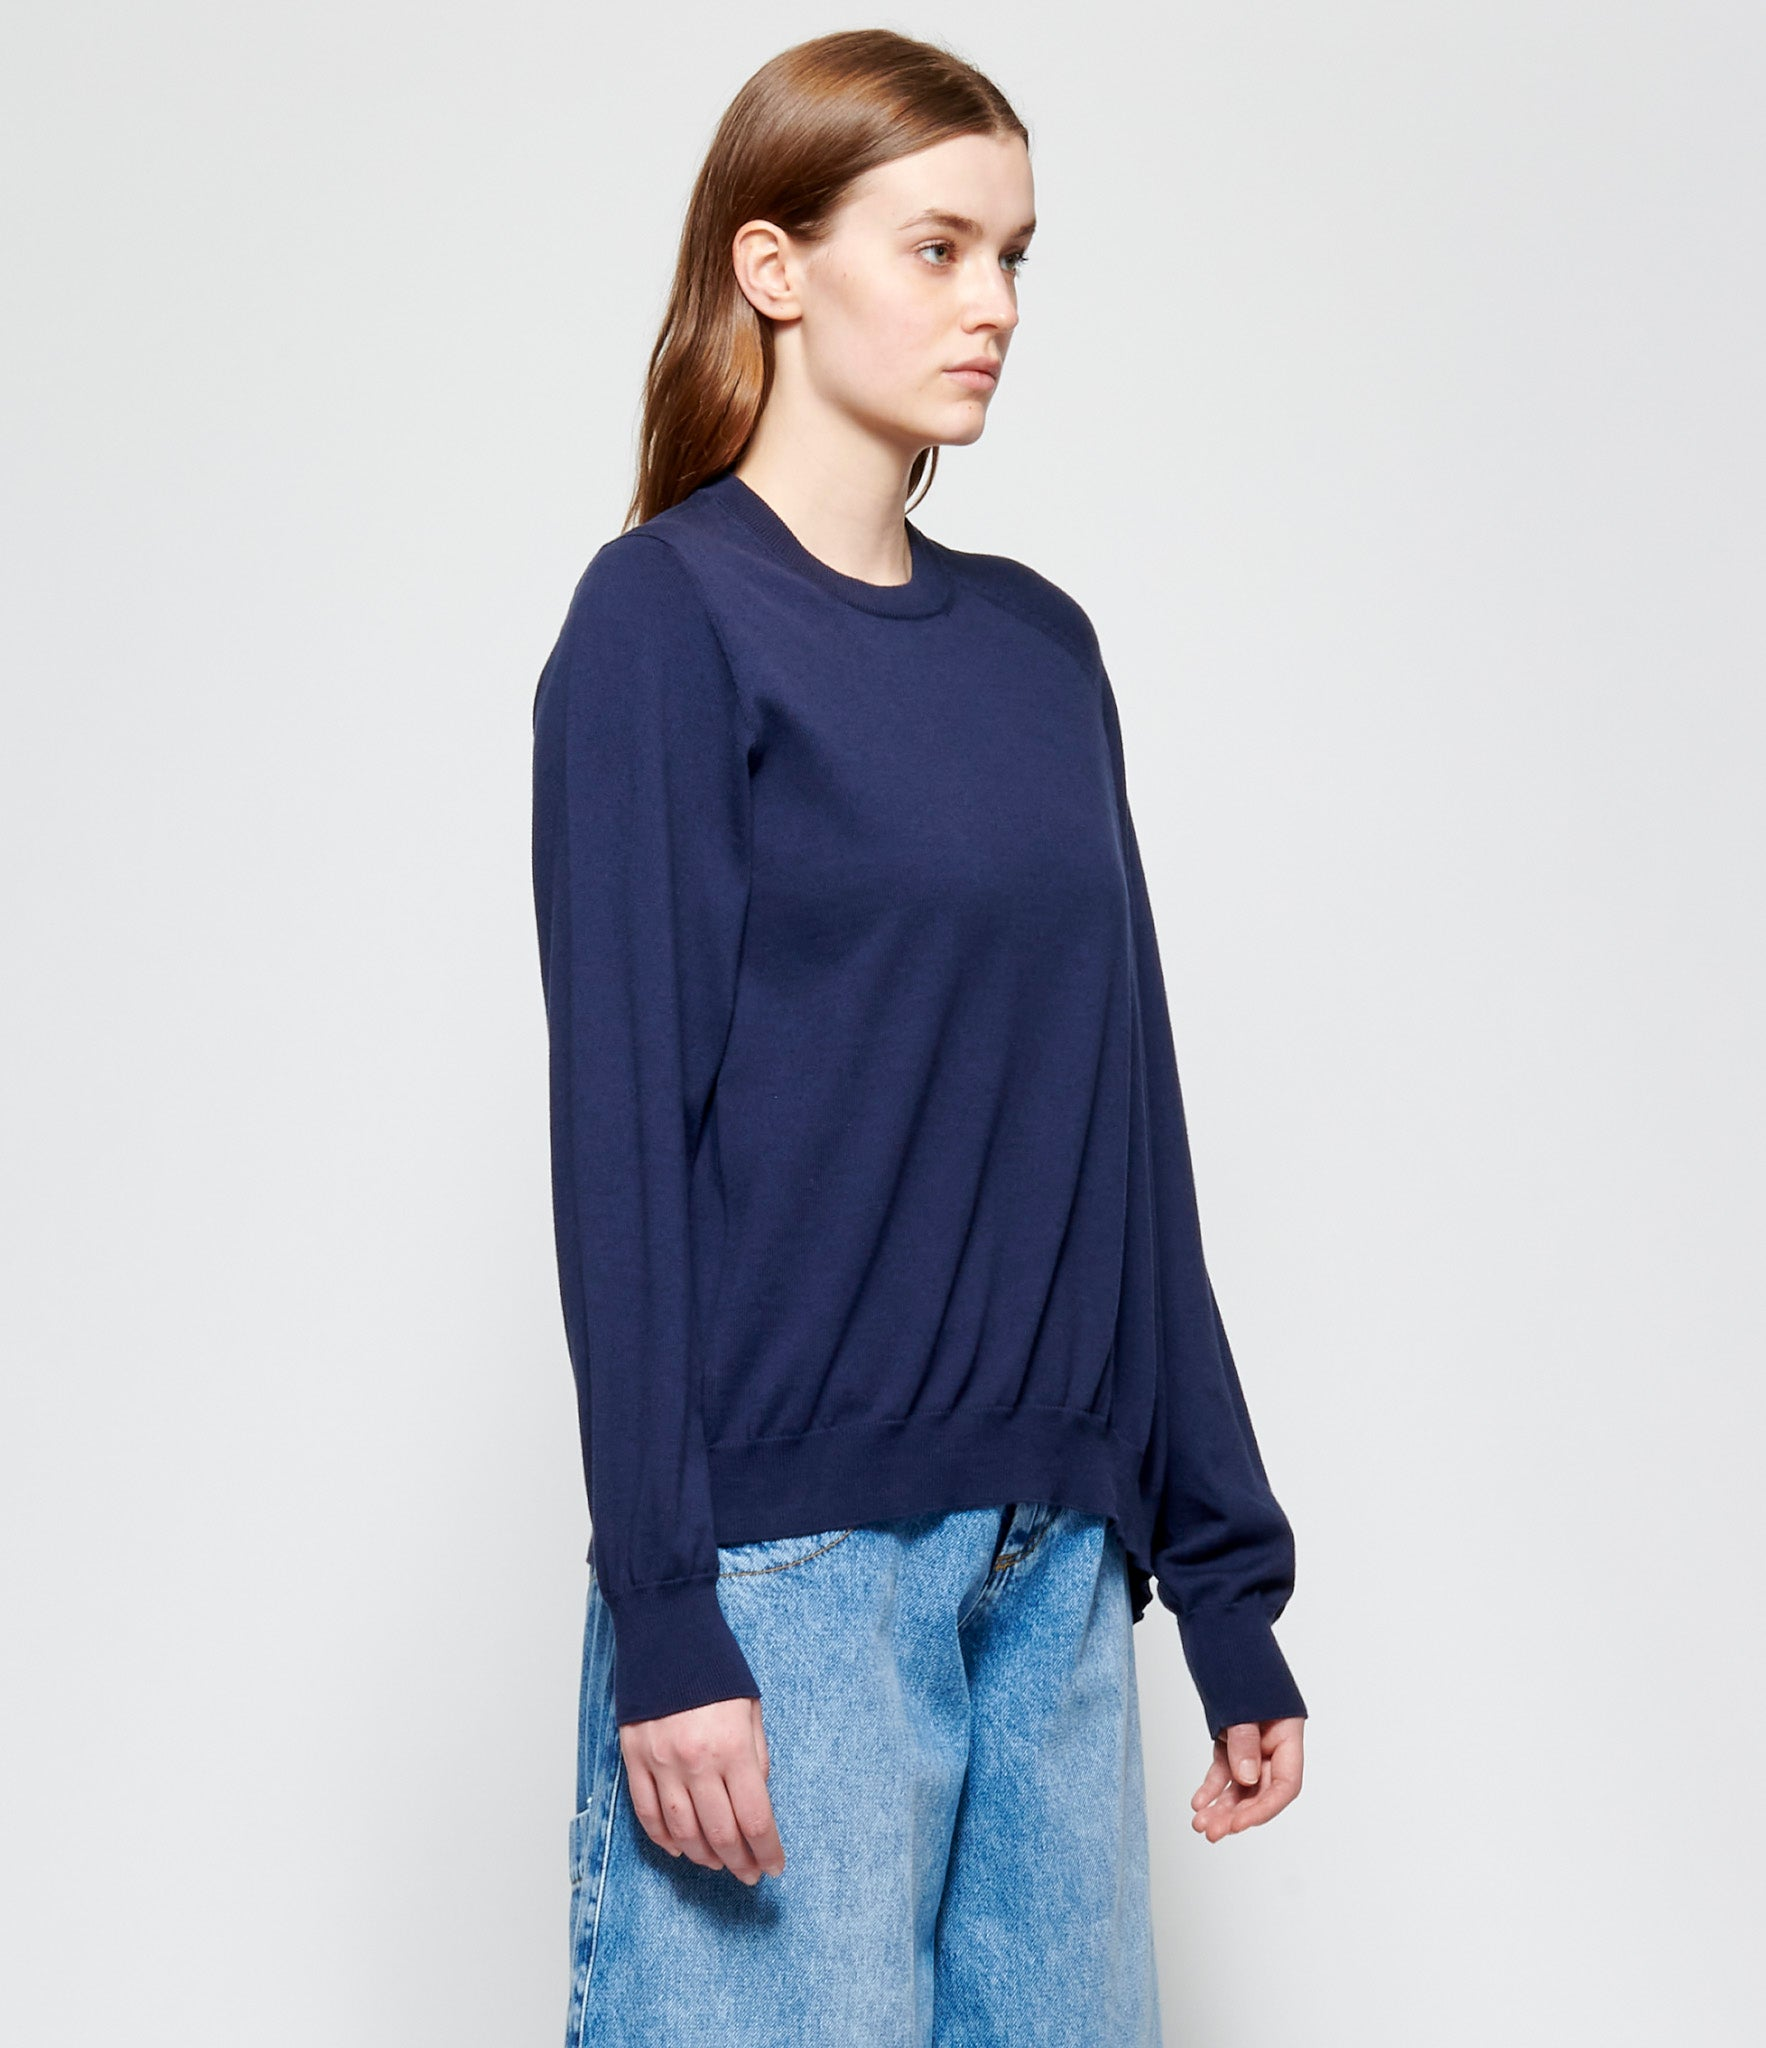 Maison Margiela New Distorted Cotton Cashmere Sweater